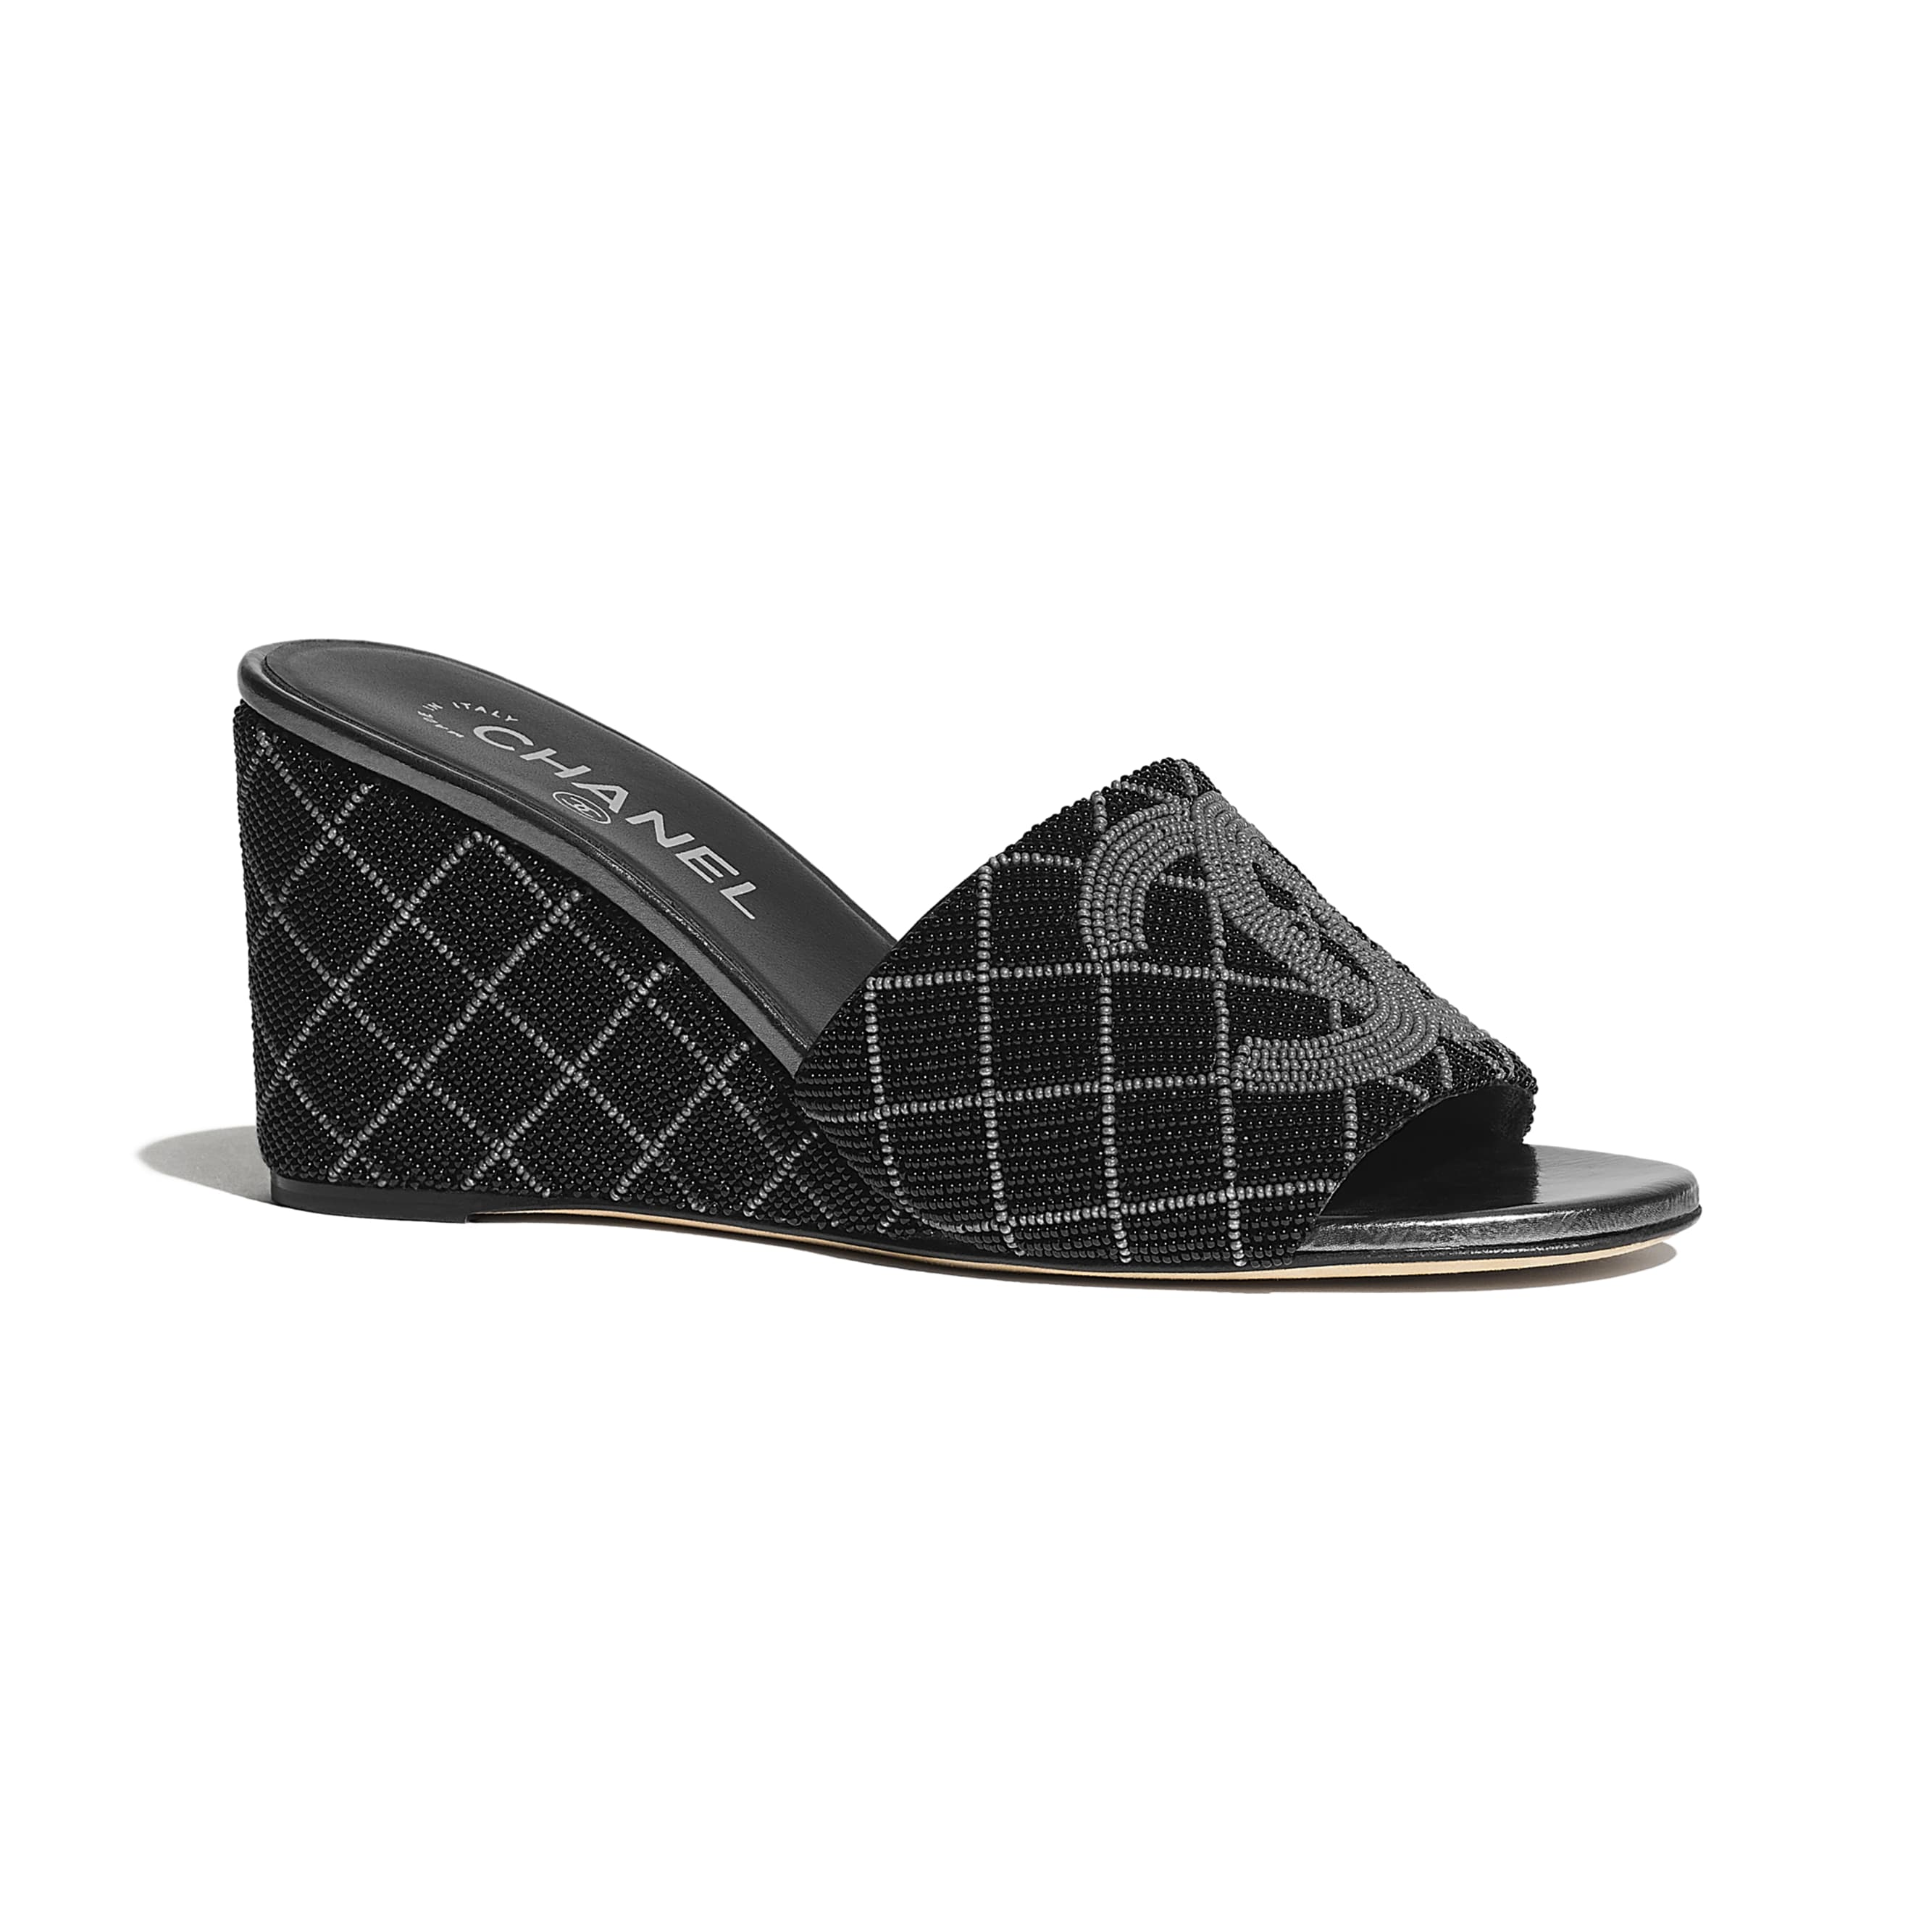 Mules - Black & Gray - Pearl Embroidery - CHANEL - Default view - see standard sized version